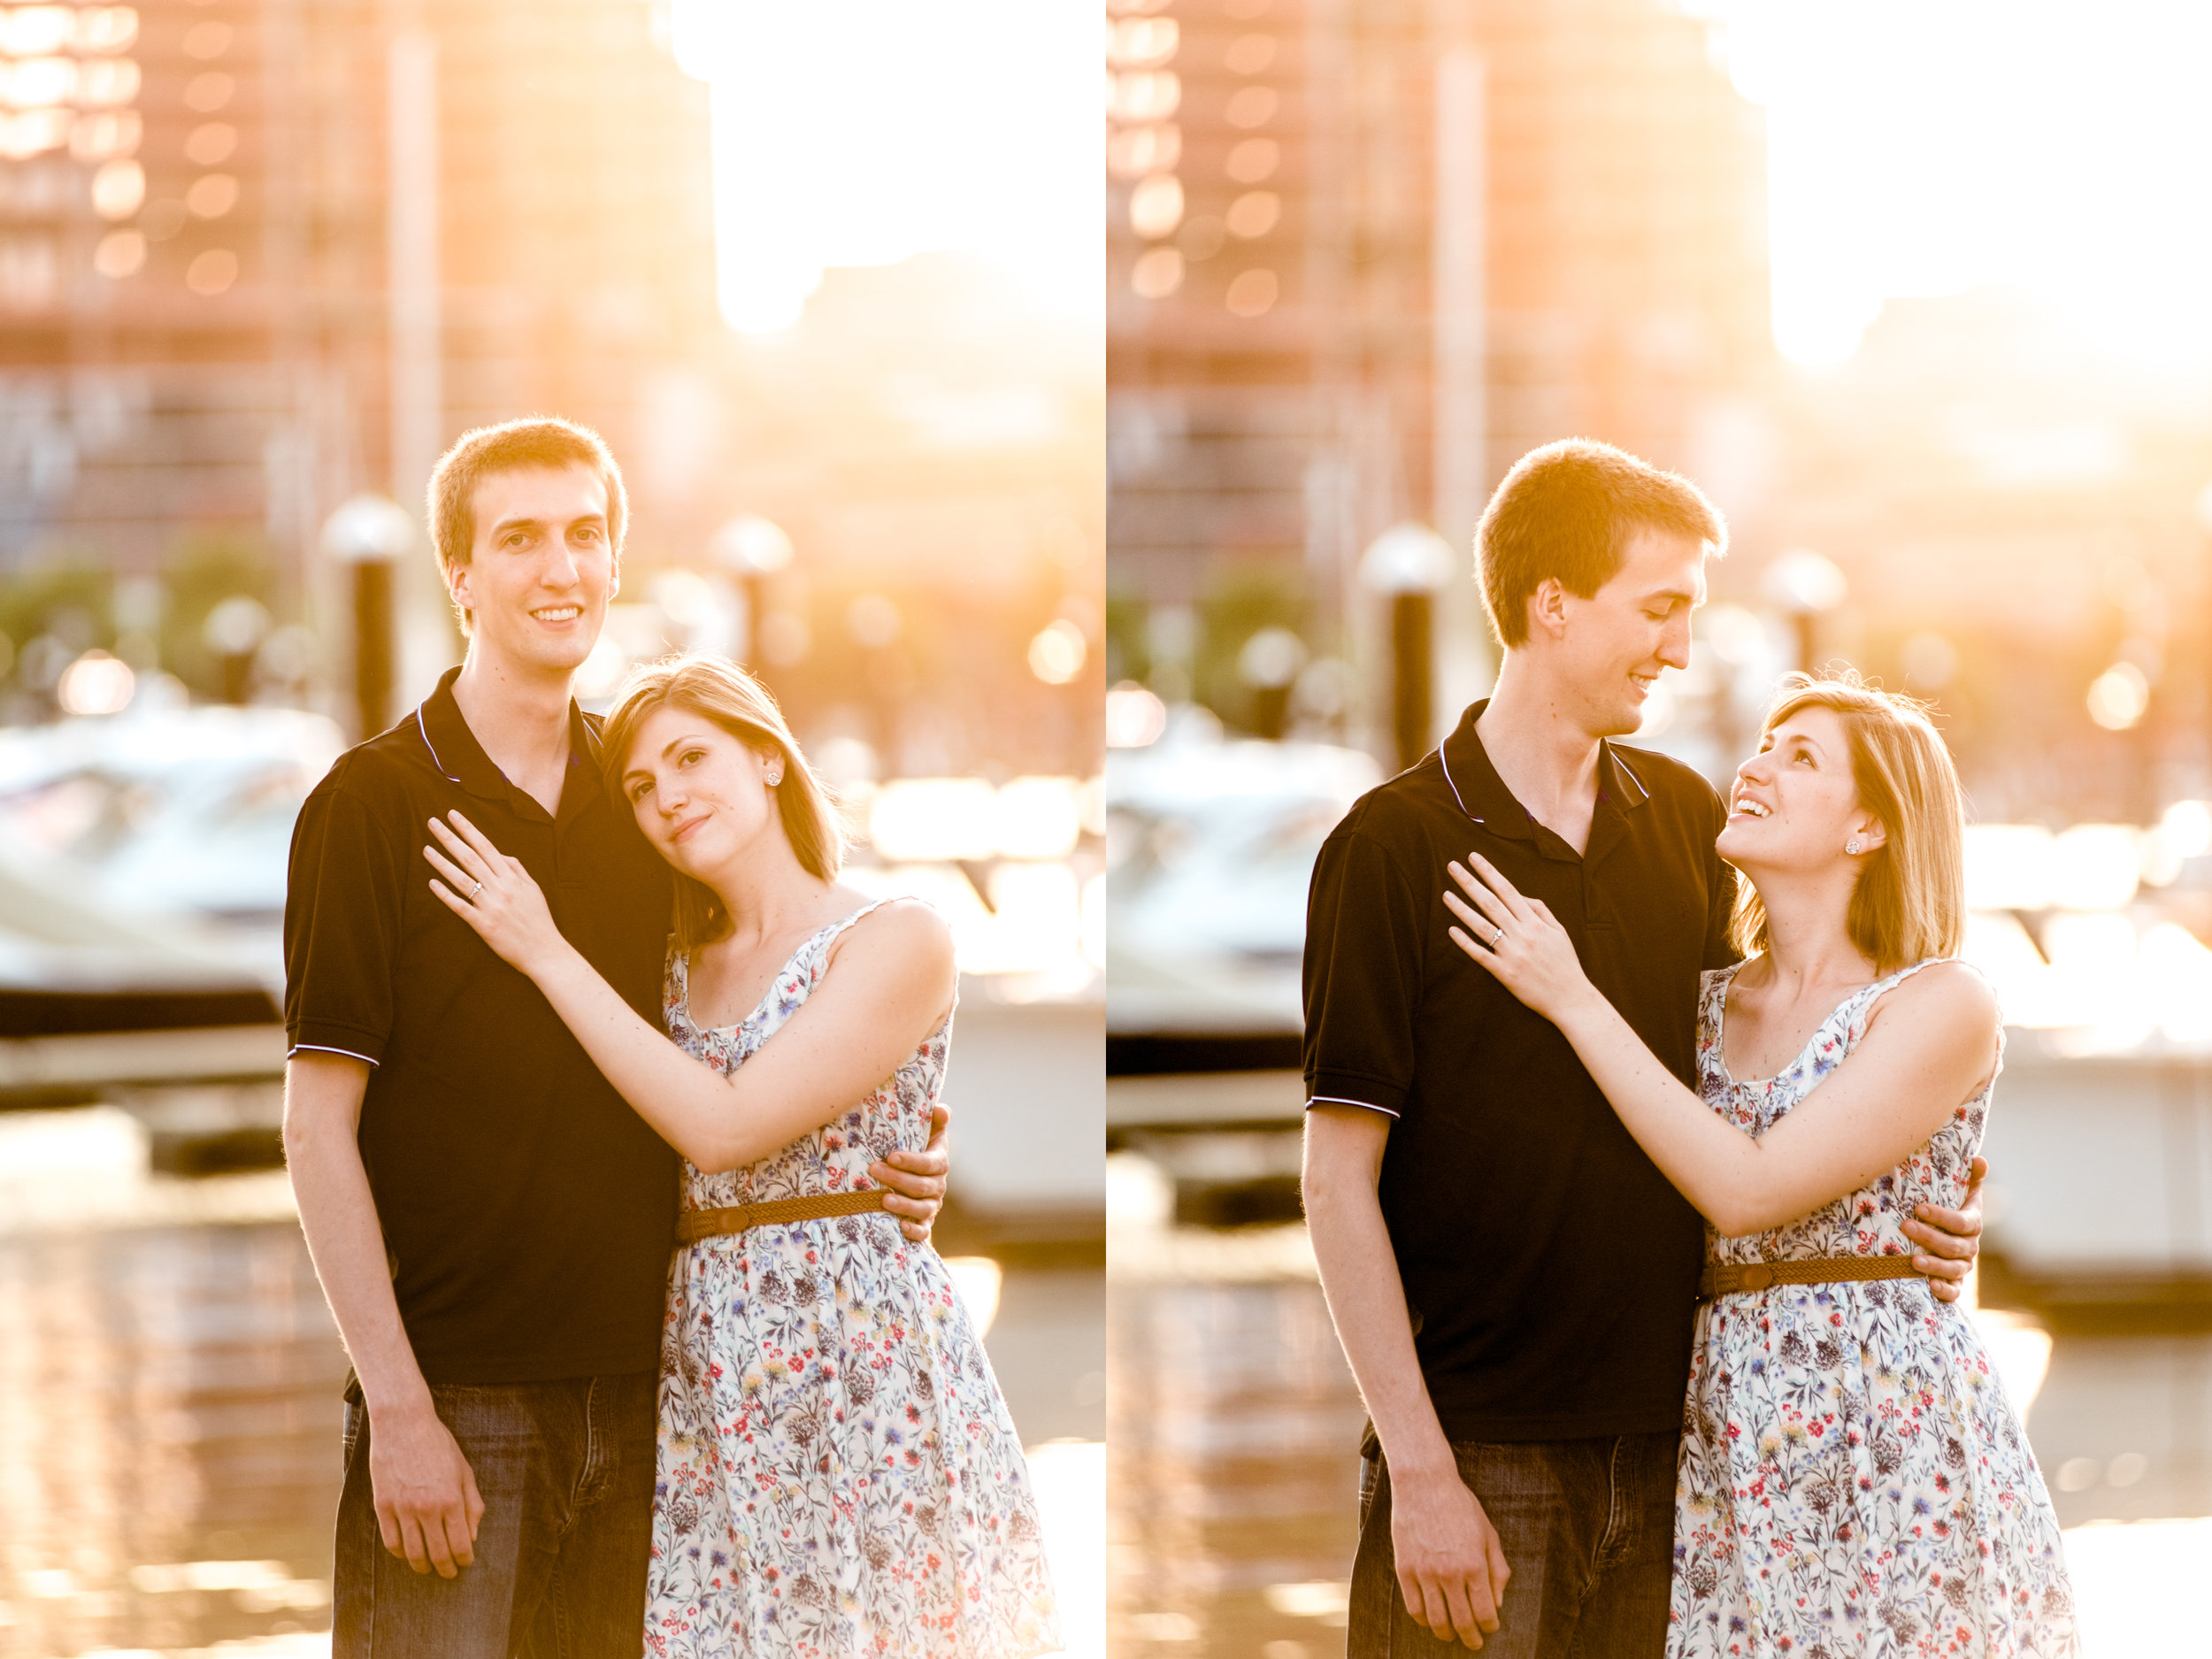 federal_hill-engagement_photography-11.jpg